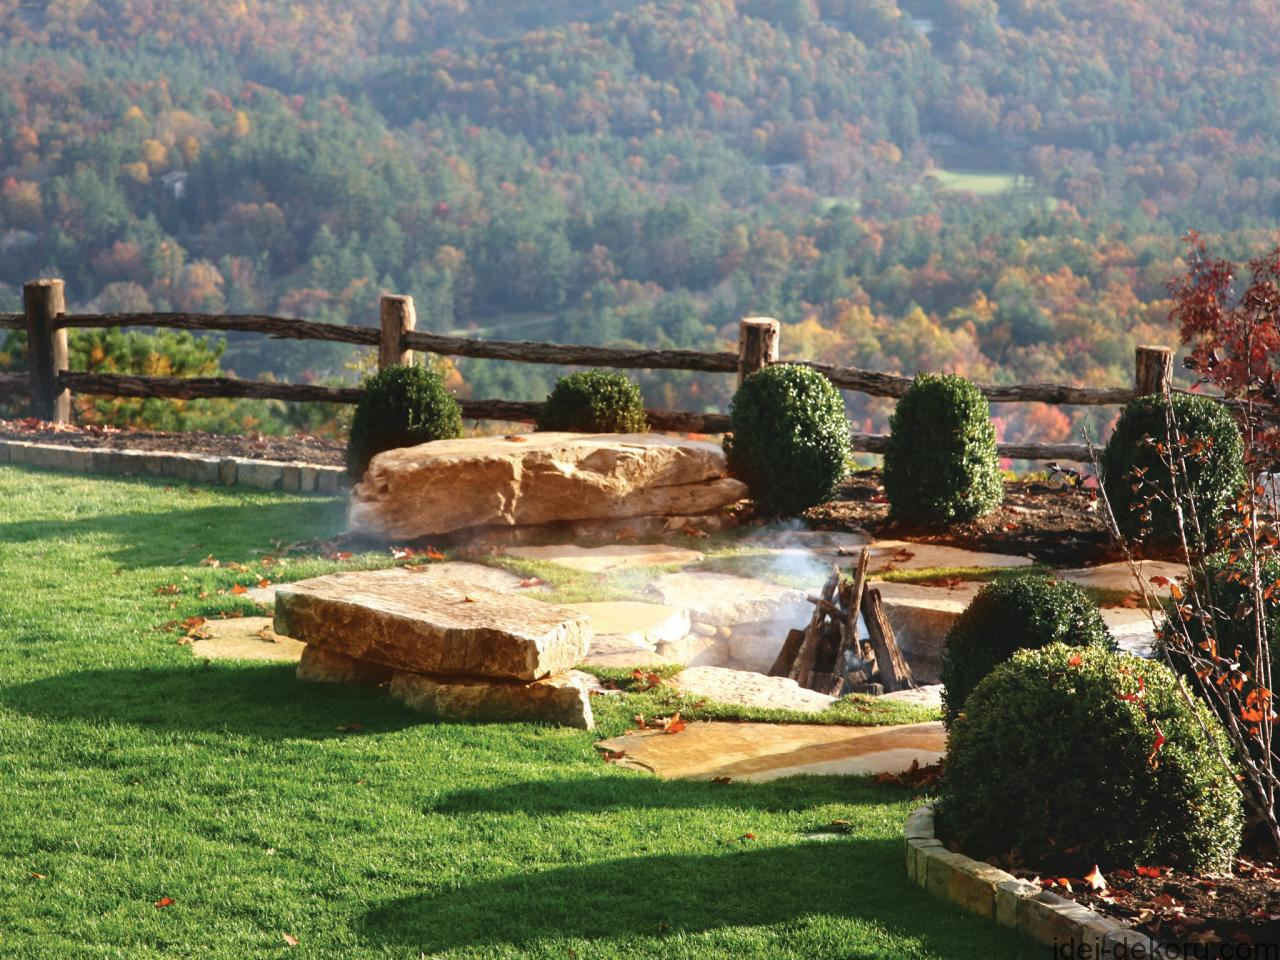 ci-lifelong-landscape-design-pg032_fire-pit-in-mountains_4x3-jpg-rend-hgtvcom-1280-960